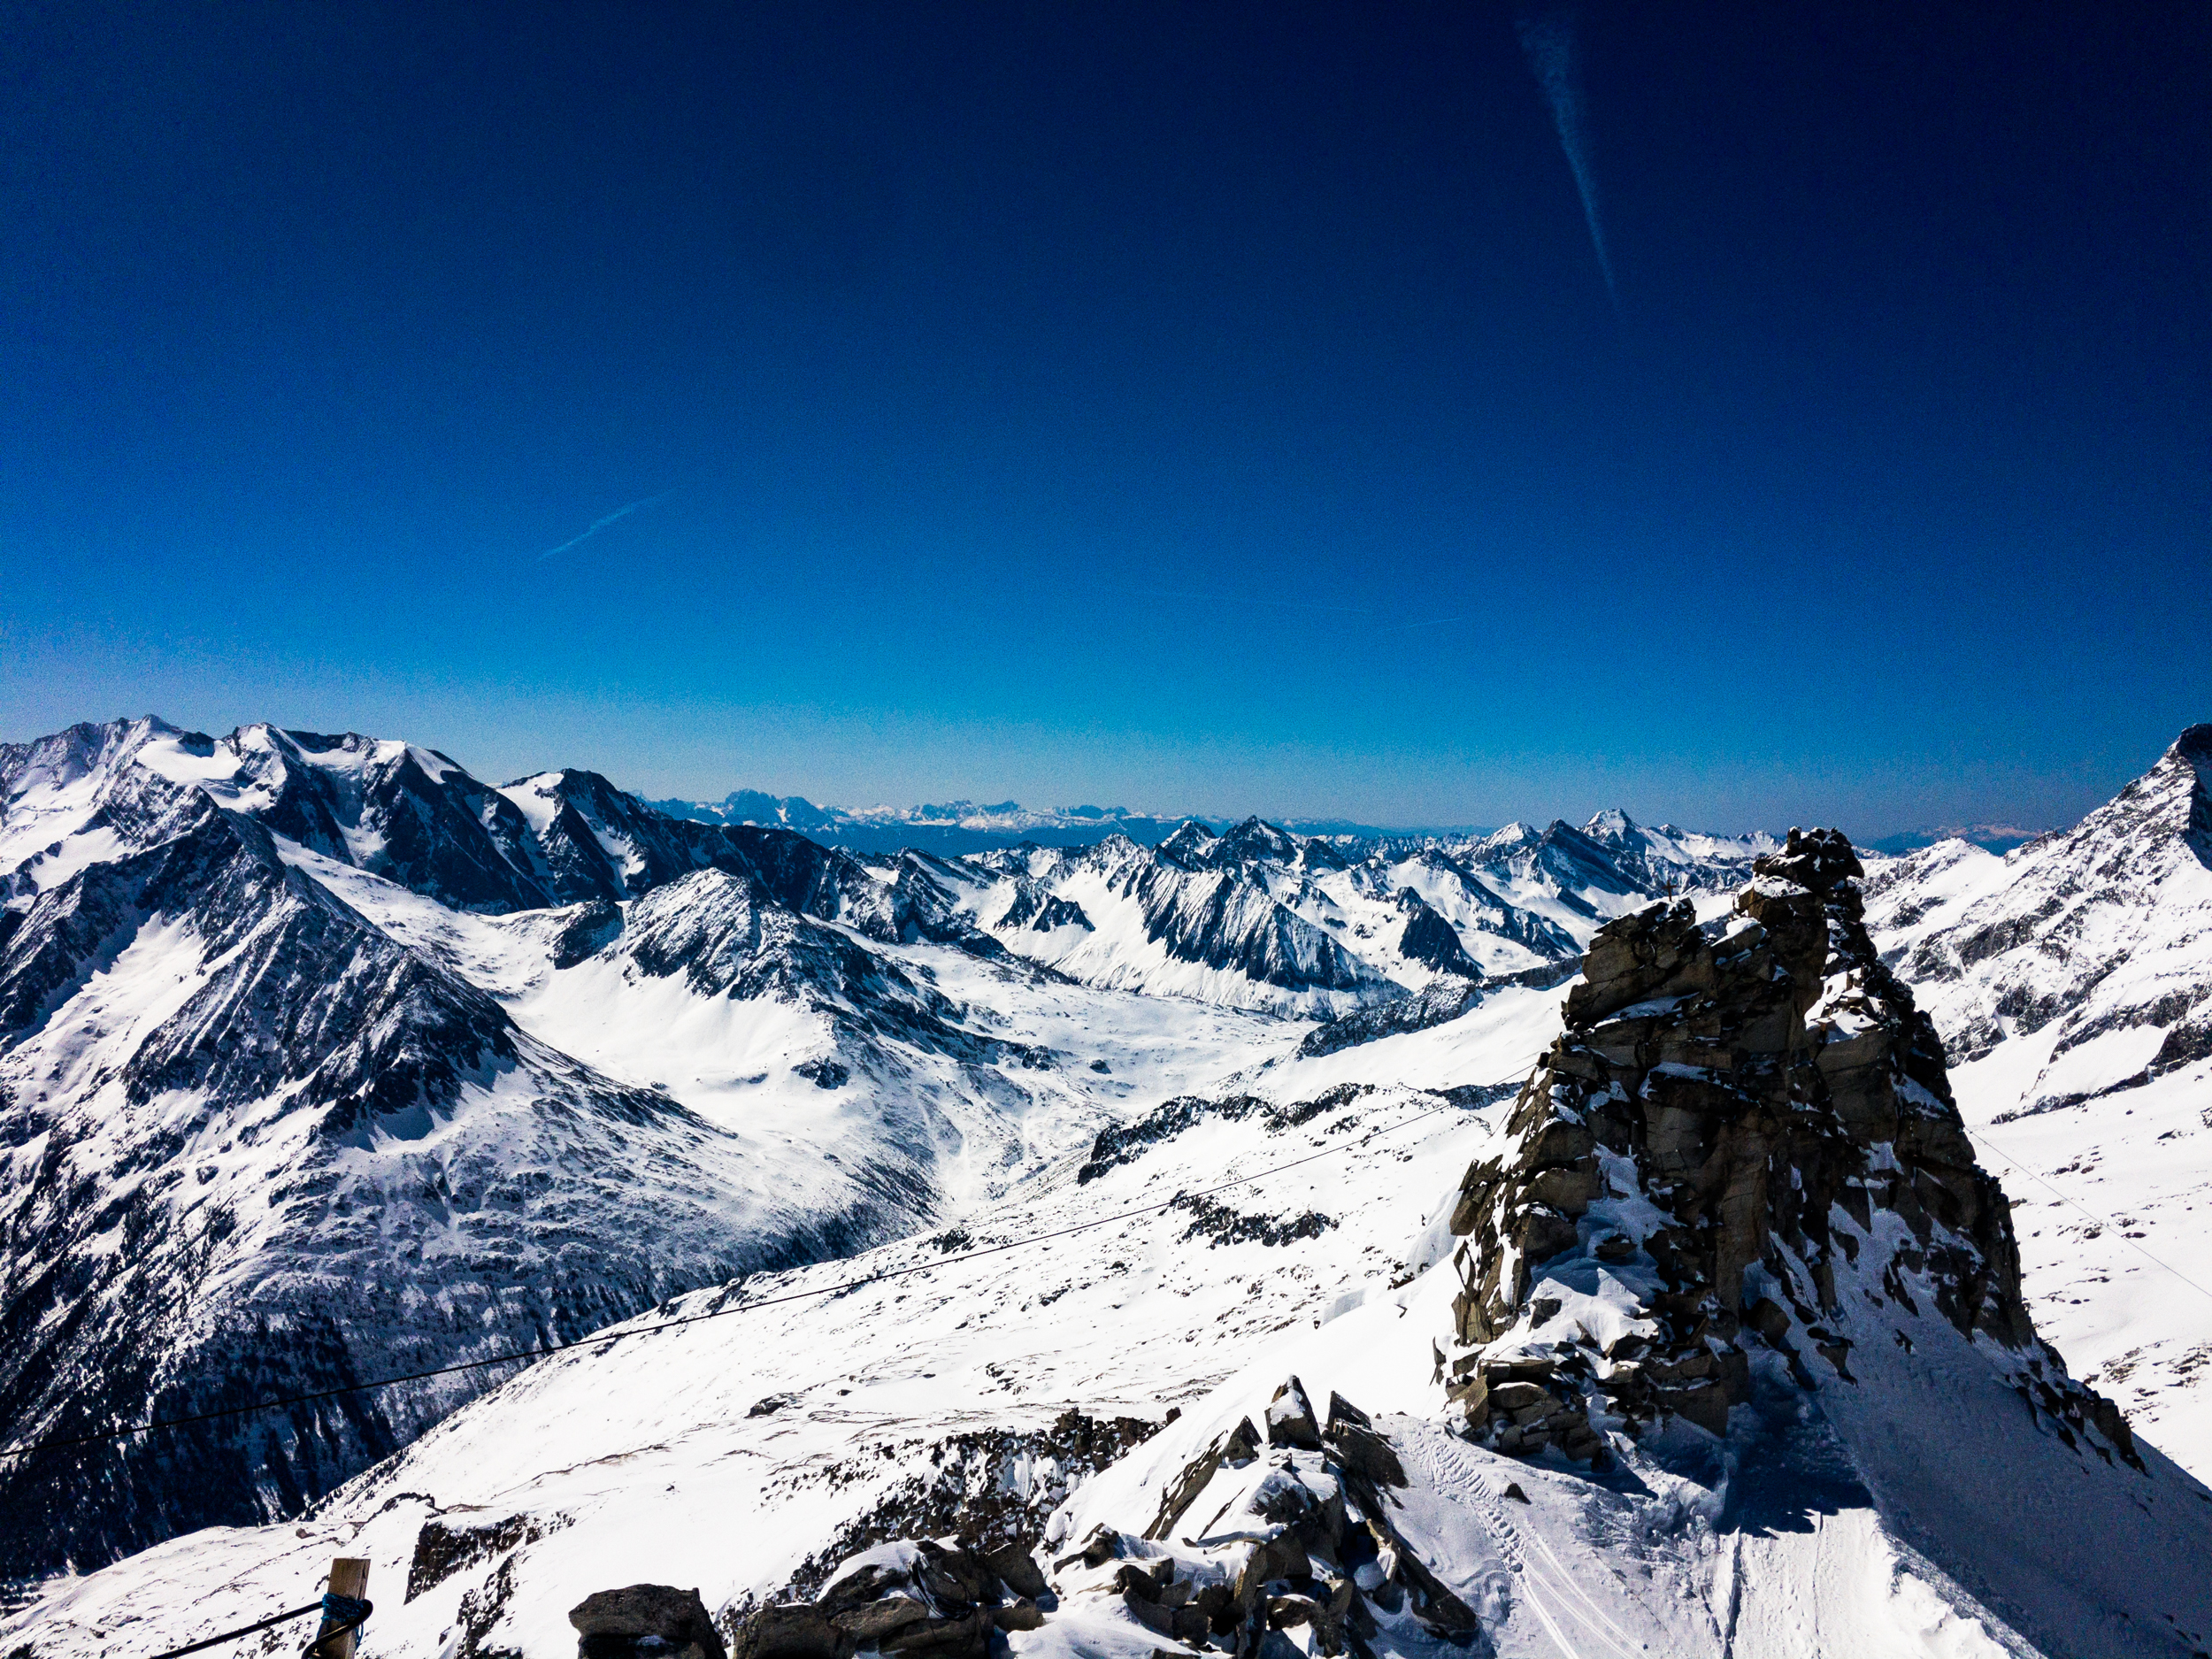 The South view from 3250m over into the Italian Alps